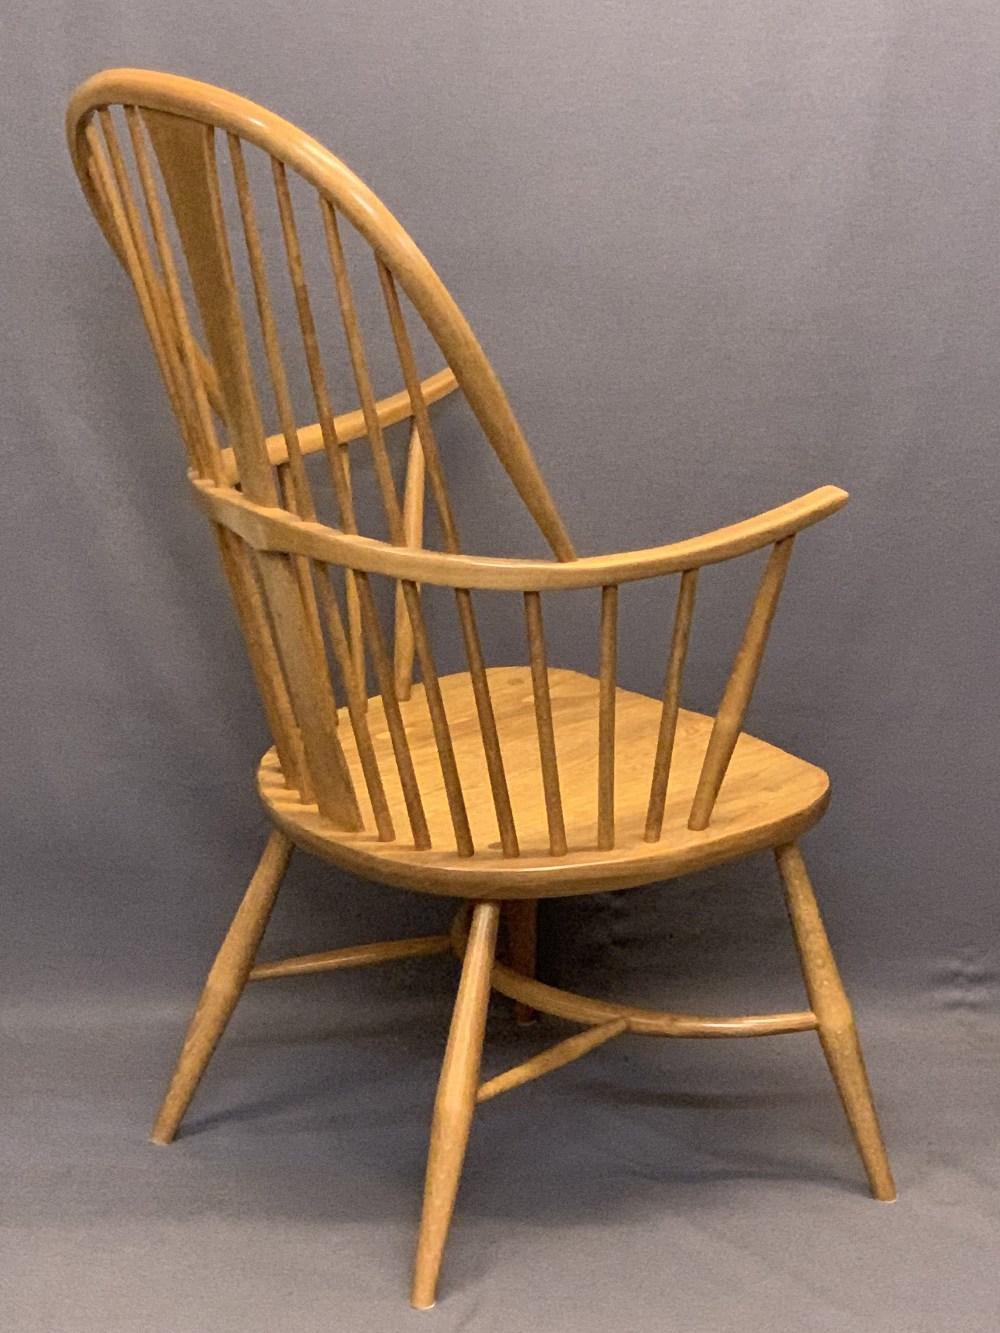 LIGHT ERCOL WINDSOR STYLE ARMCHAIR - with hoop back, crinoline type stretcher and removable - Image 4 of 5